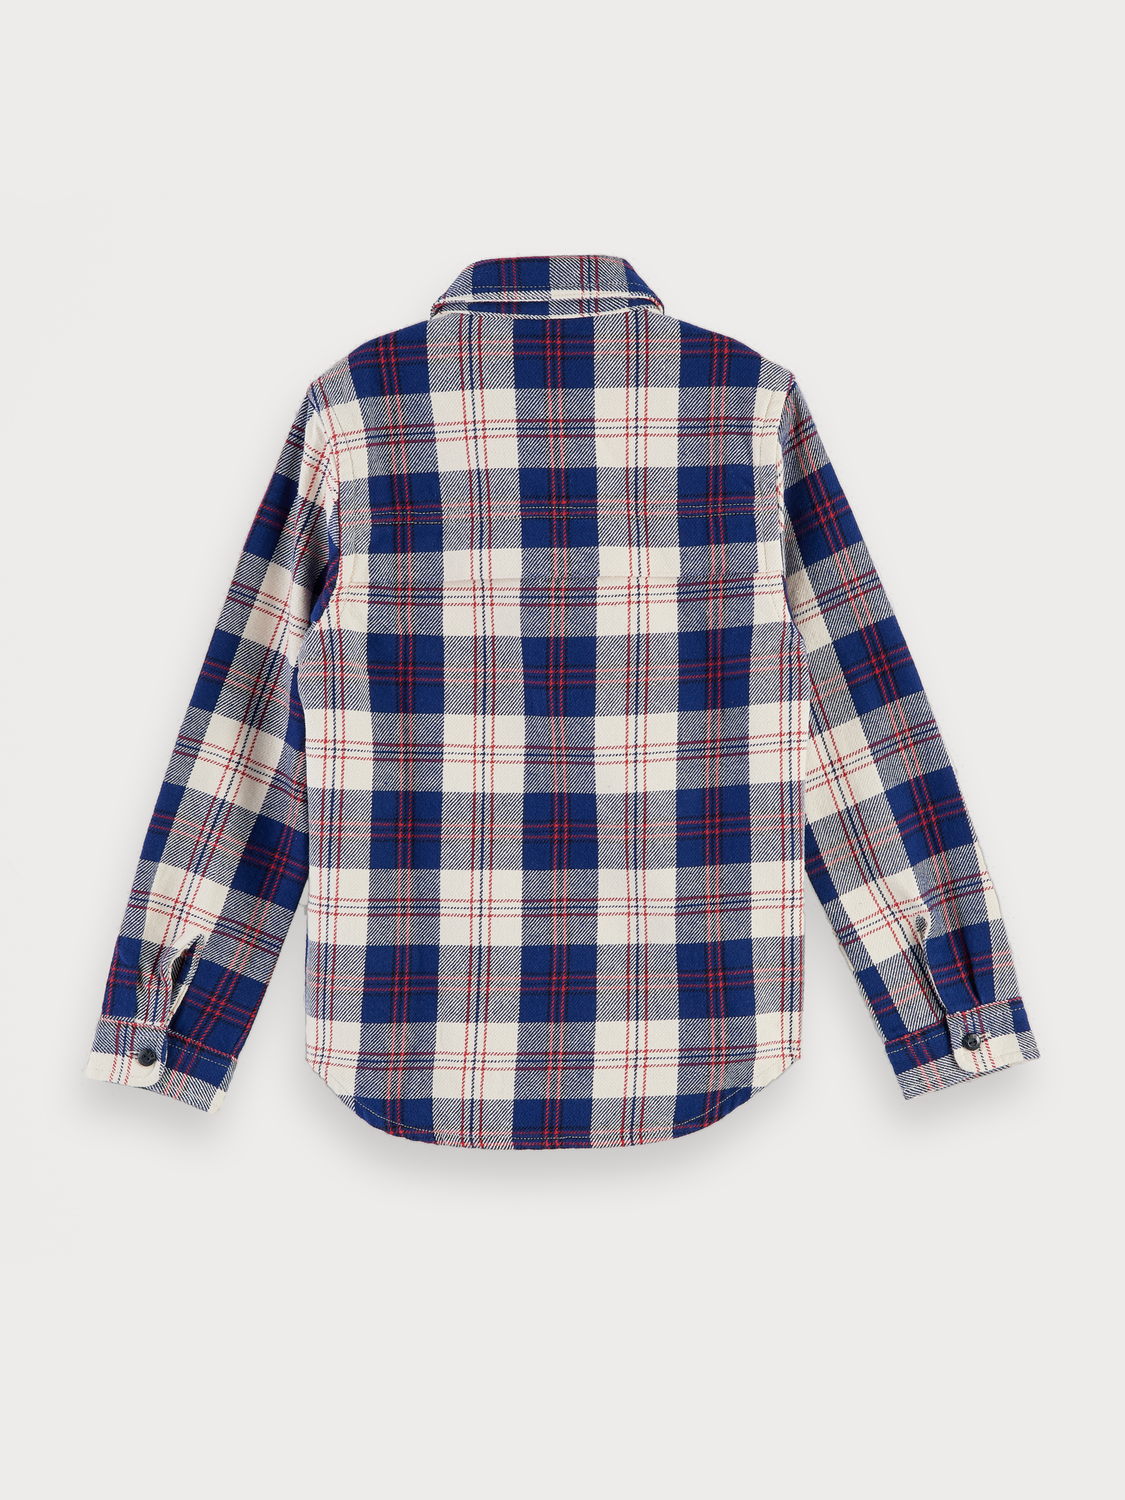 Boys Checked Flannel Shirt | Regular fit